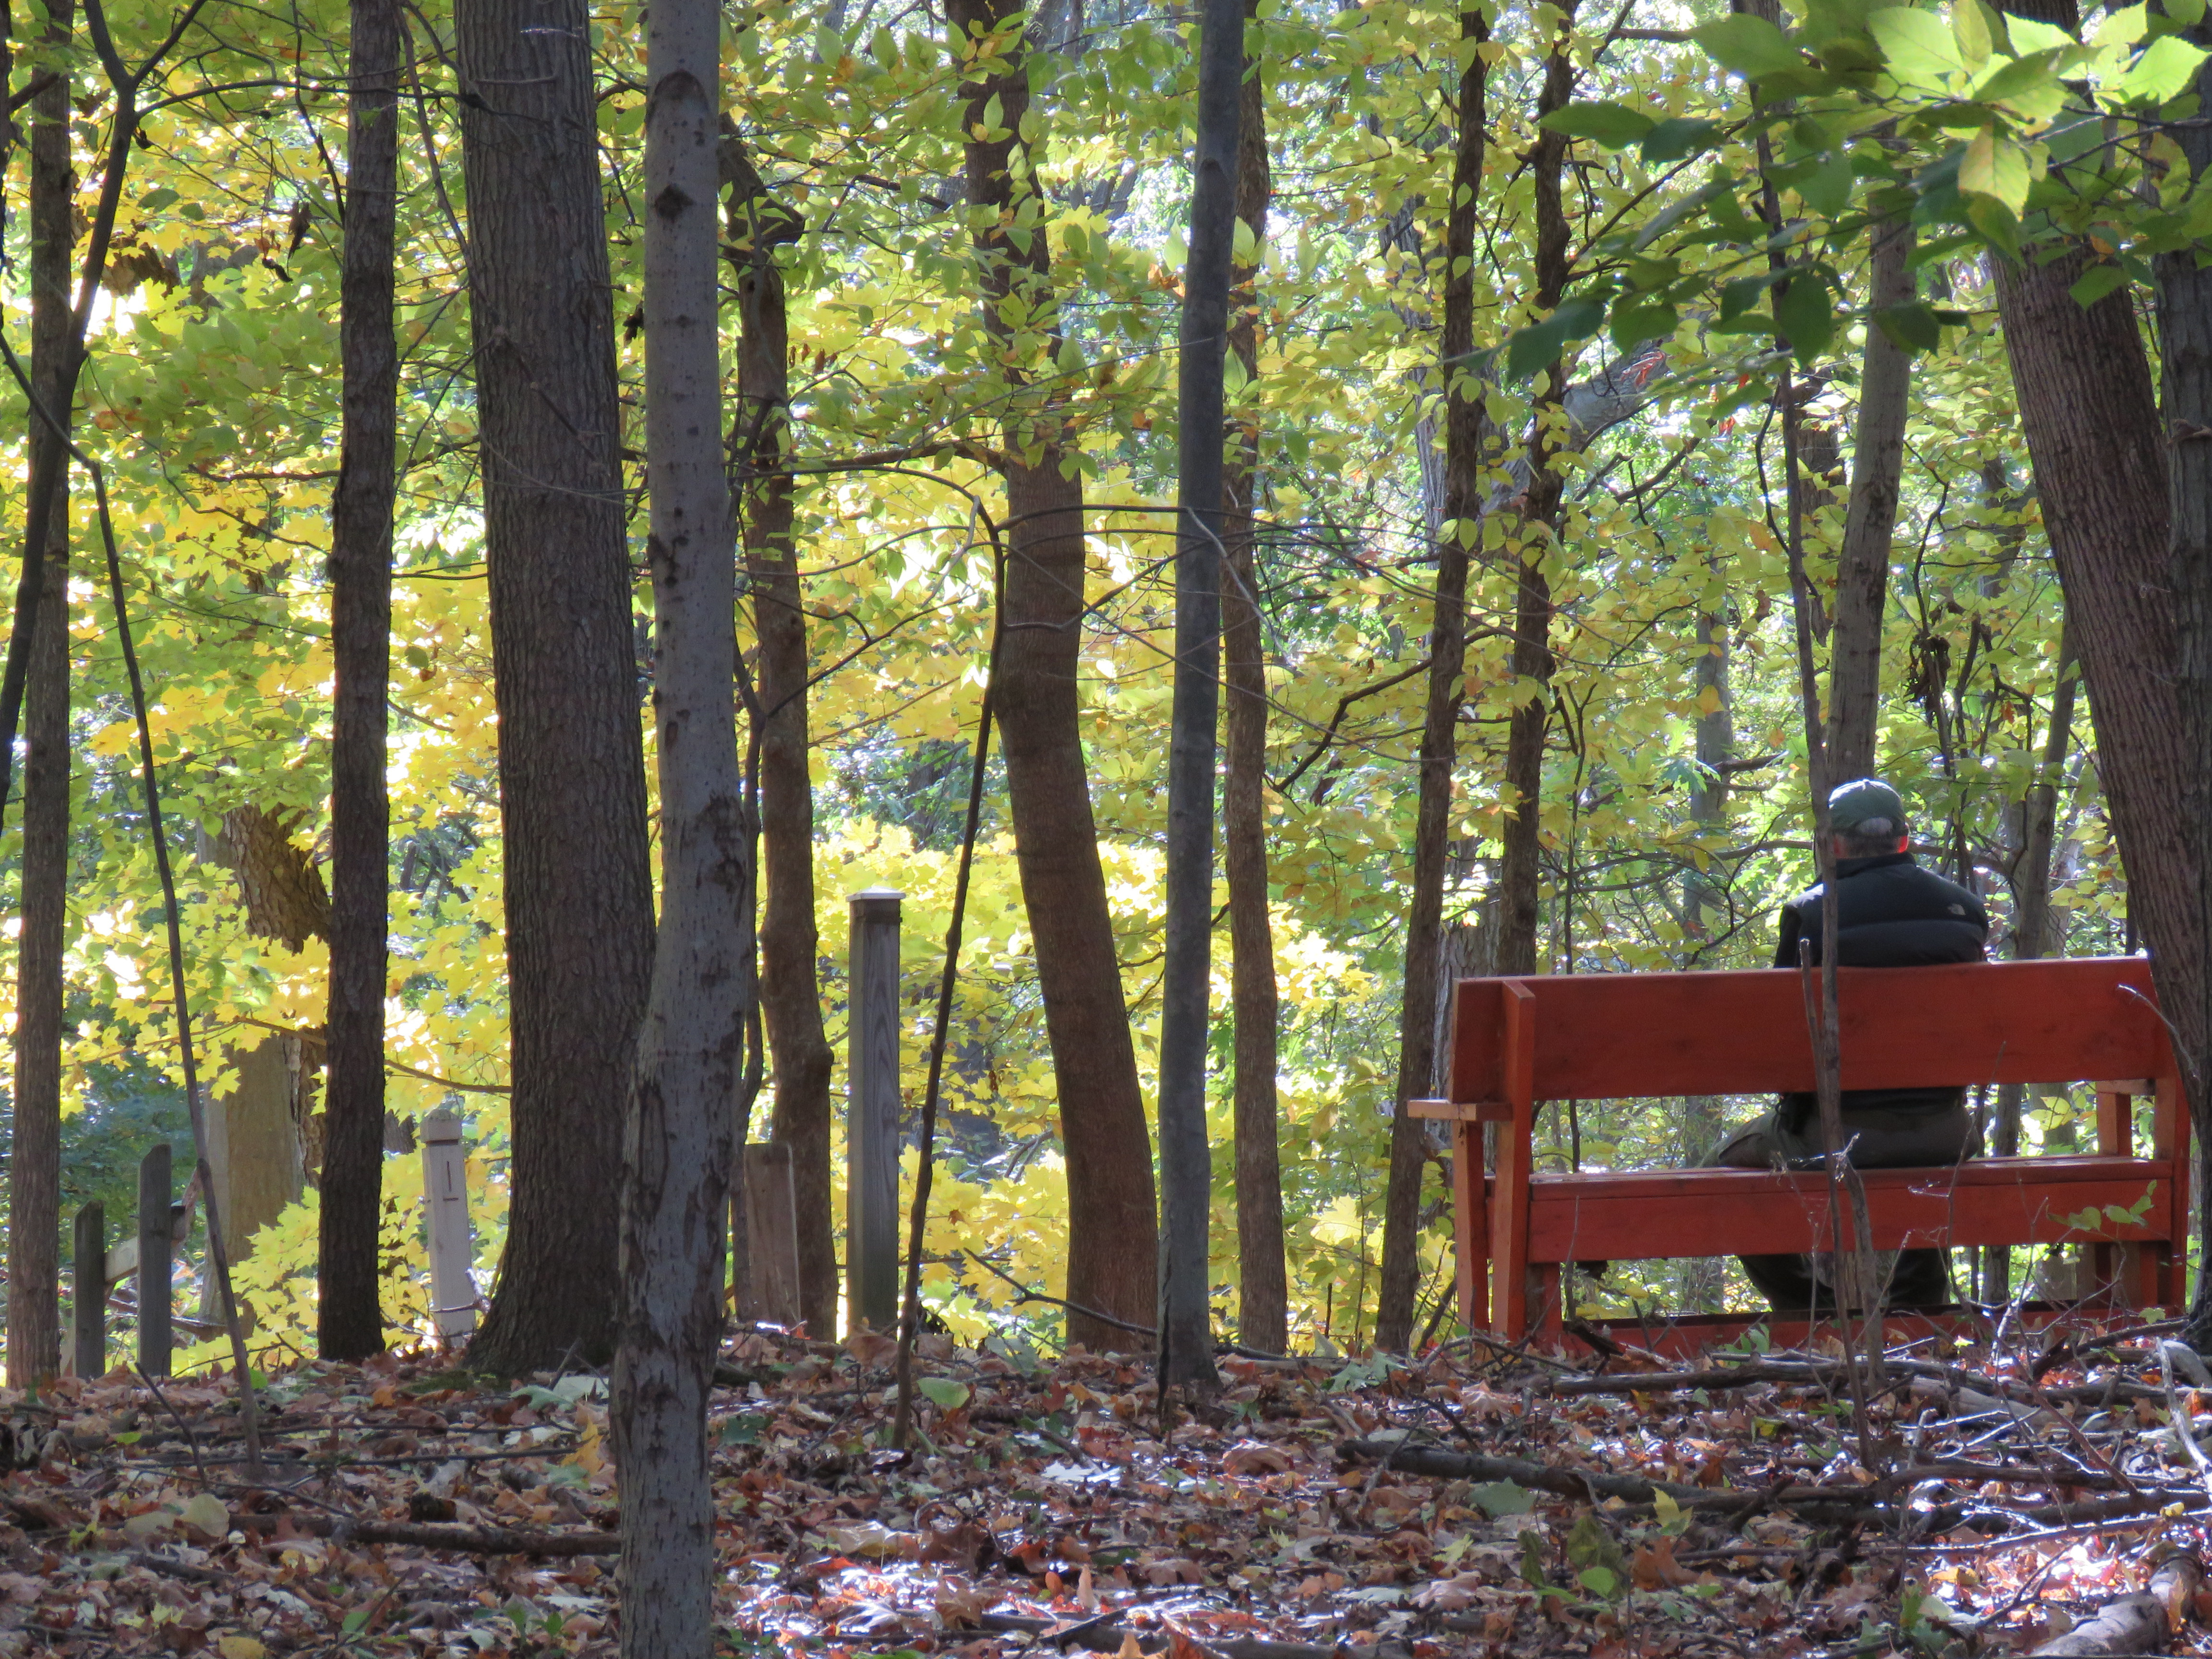 A man resting on bench in a wooded area at the top of a moraine.